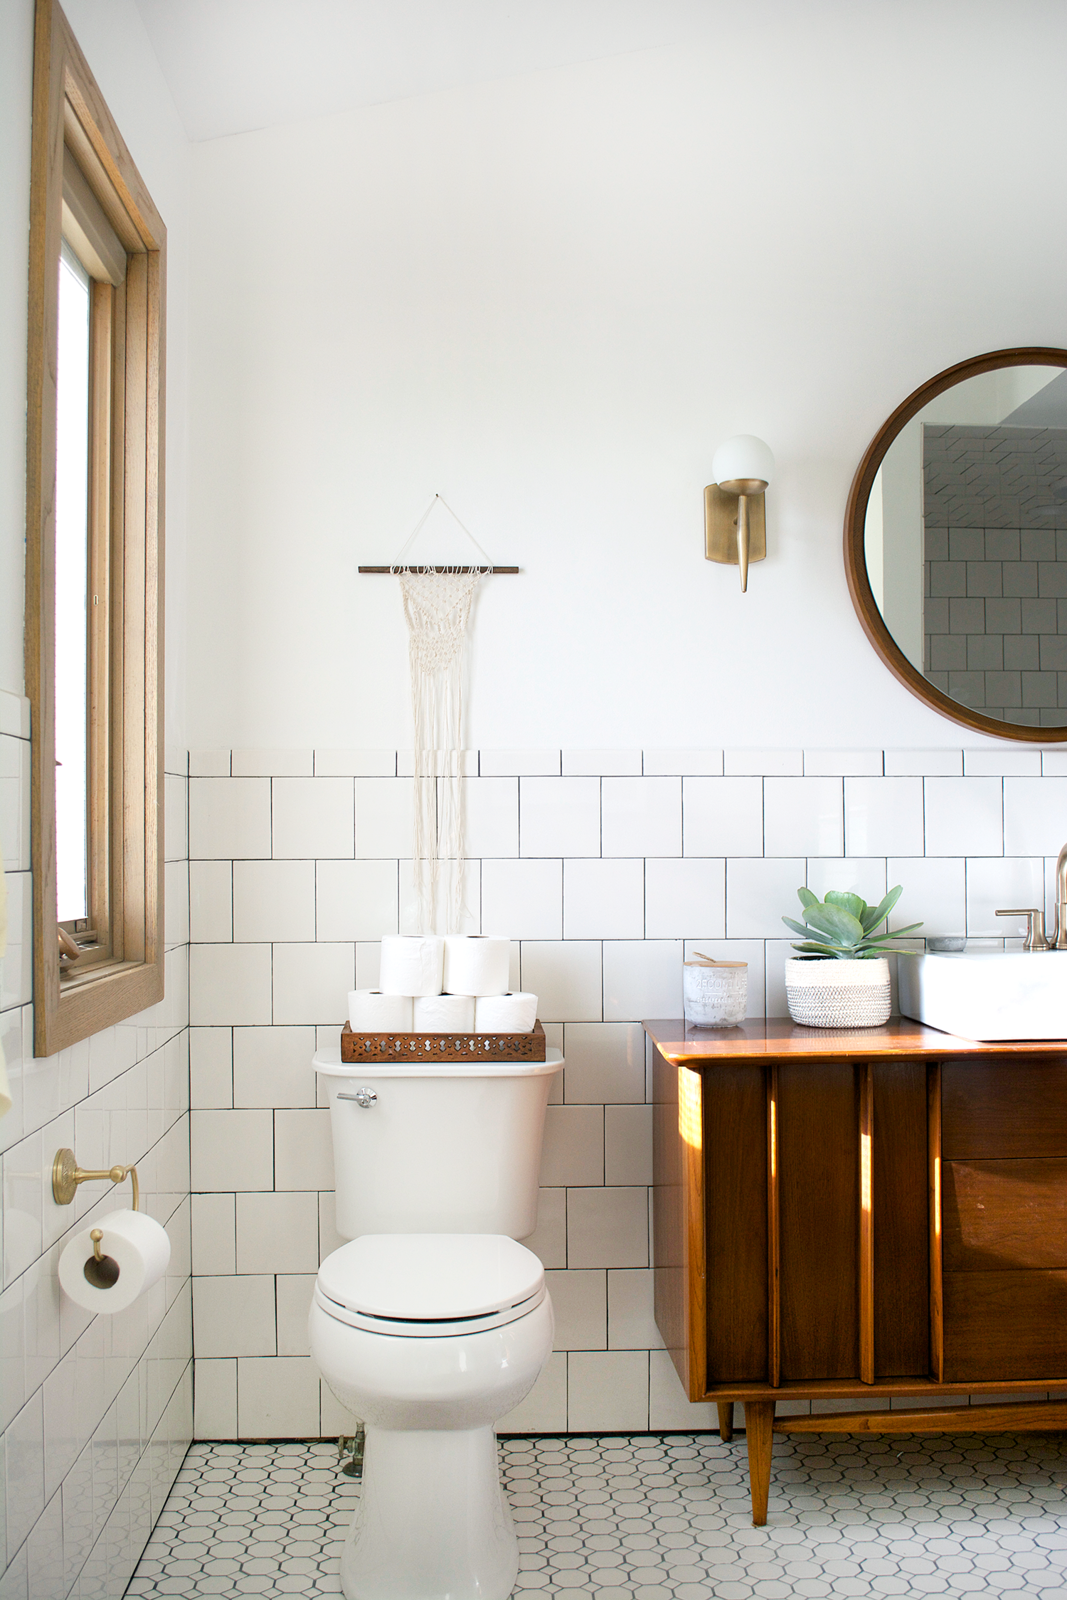 Bath, Wood, Vessel, Two Piece, Subway Tile, Ceramic Tile, and Wall The toilet was fairly new, so they left it as it.  Bath Ceramic Tile Subway Tile Two Piece Photos from Before & After: An Outdated Bathroom Gets a Complete Makeover in Just 6 Weeks